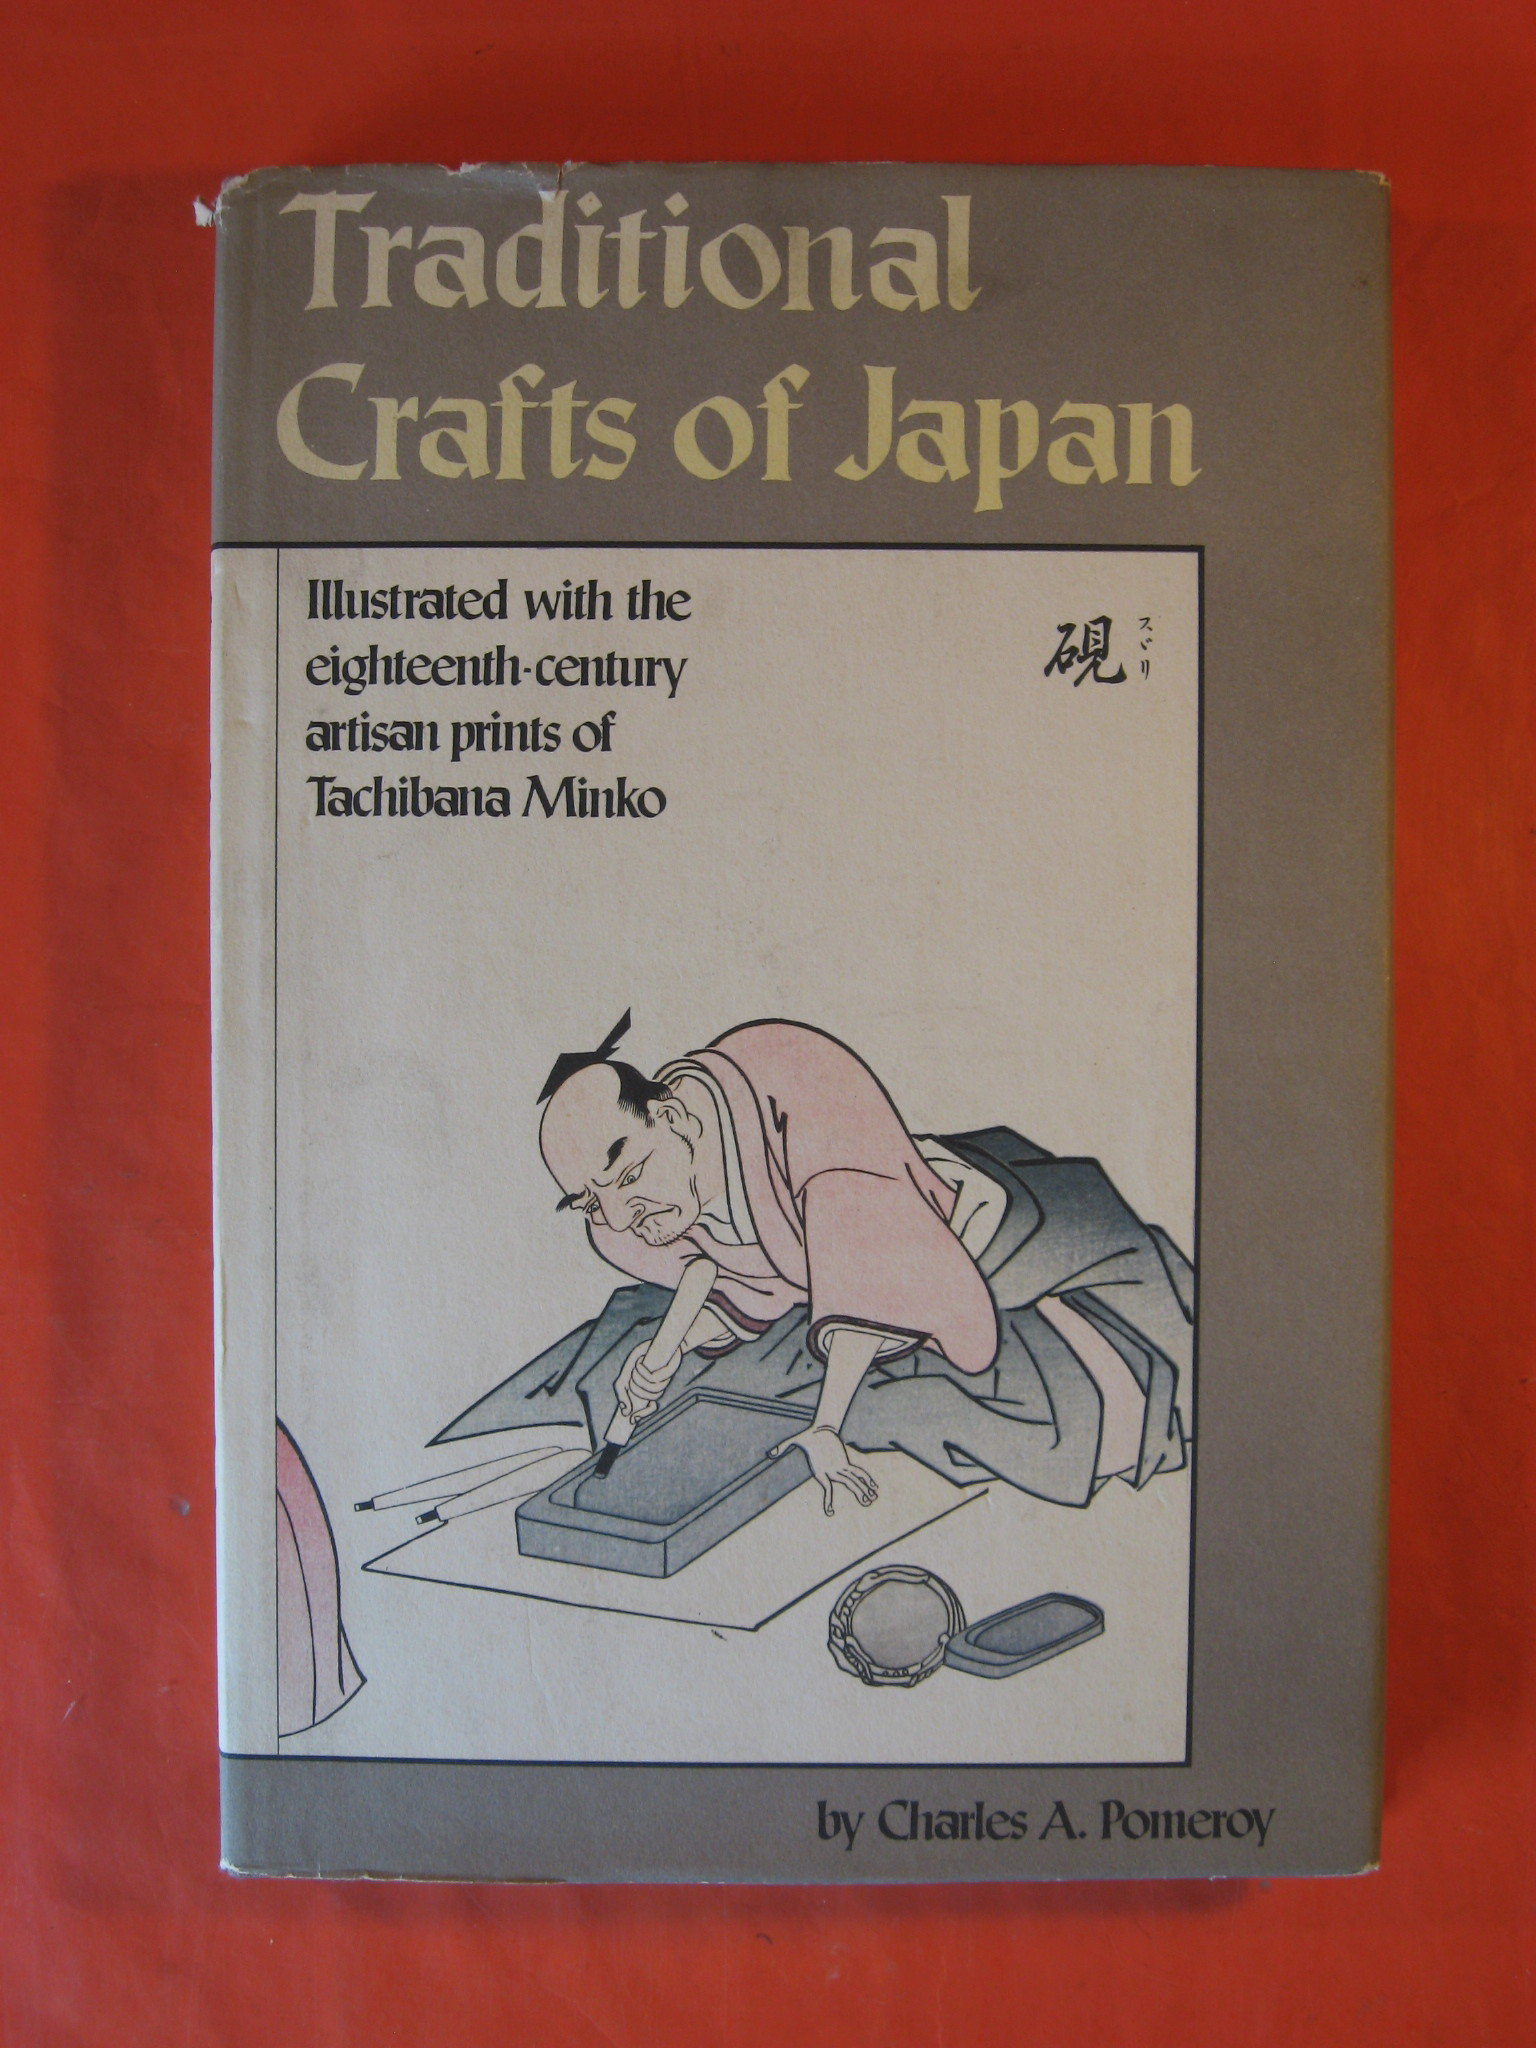 Traditional Crafts of Japan: Illustrated with the Eighteenth-Century Artisan Prints of Tachibana Minko, Pomeroy, Charles A.